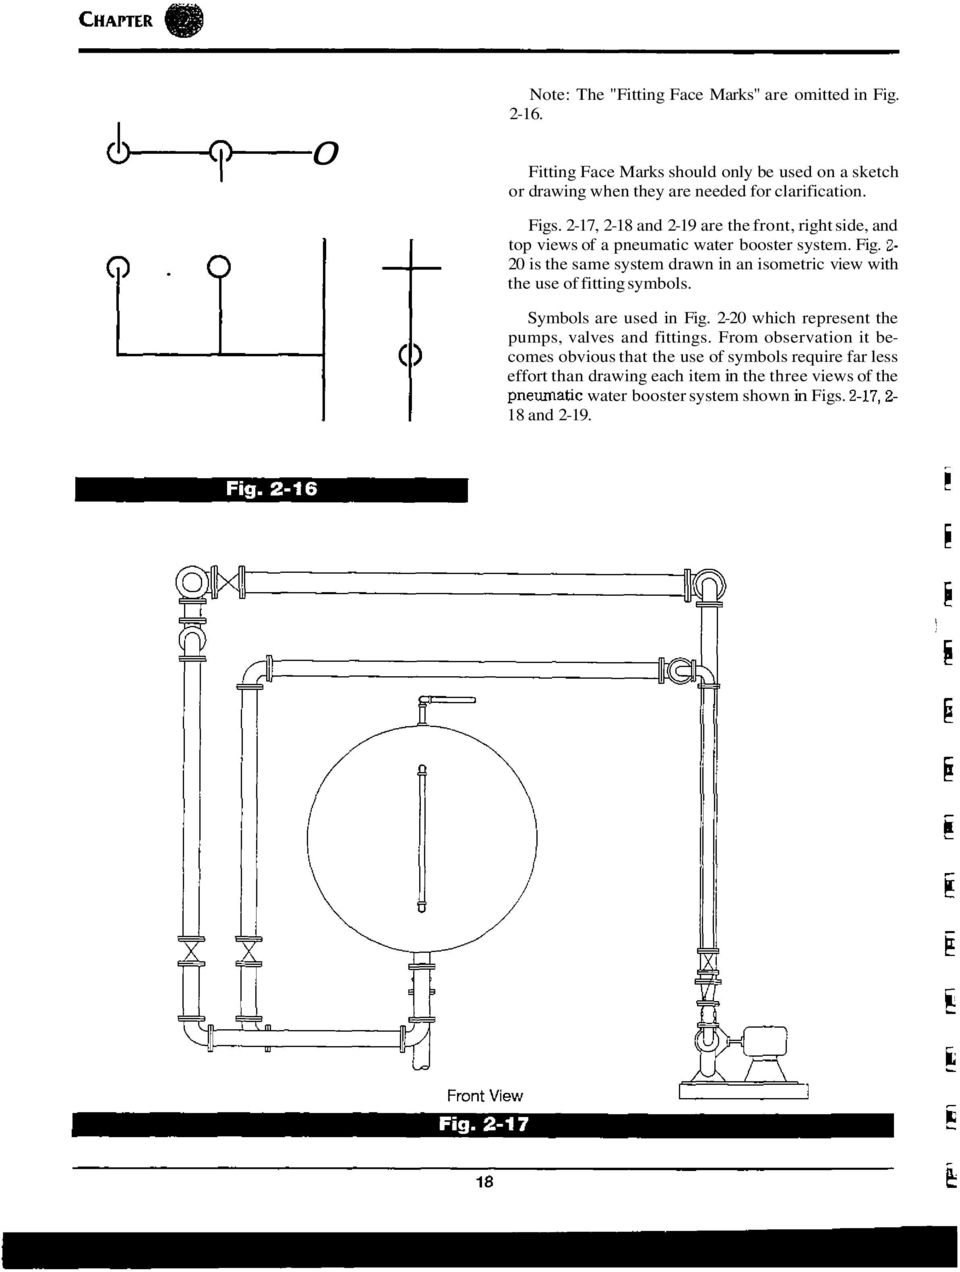 Three View Plan View And Elevation View Drawings Pdf